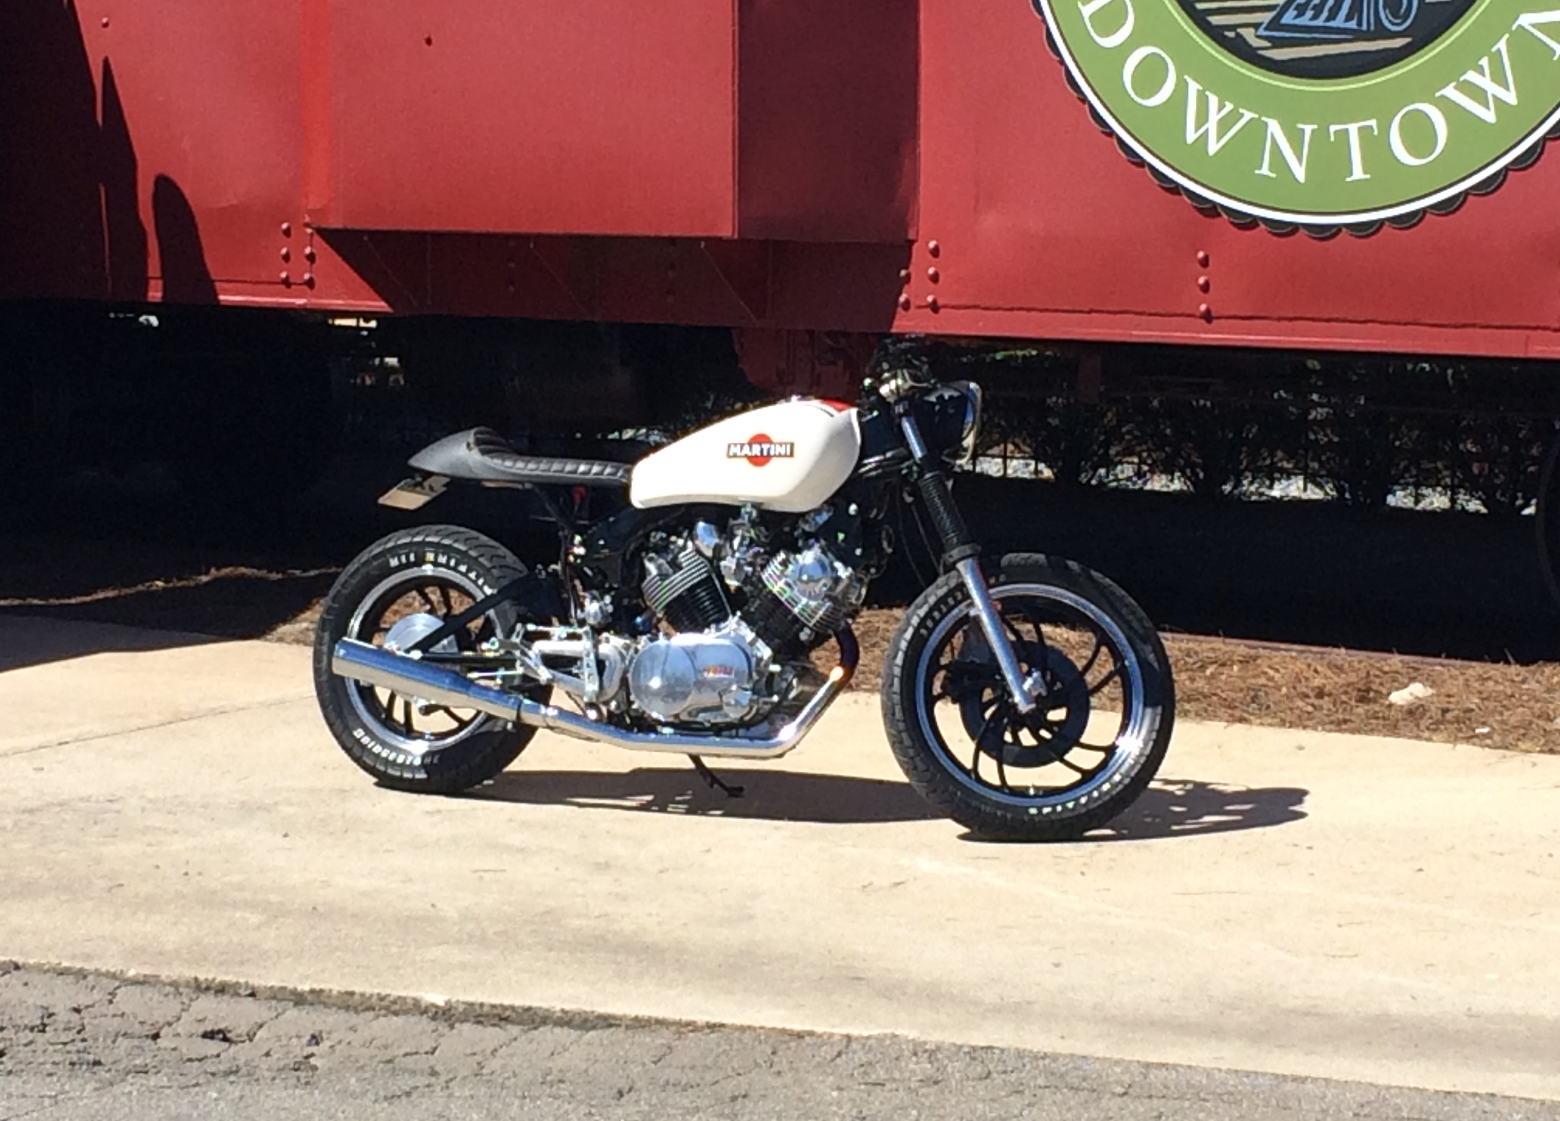 Yamaha Xv 750 Virago Cafe Racer, After